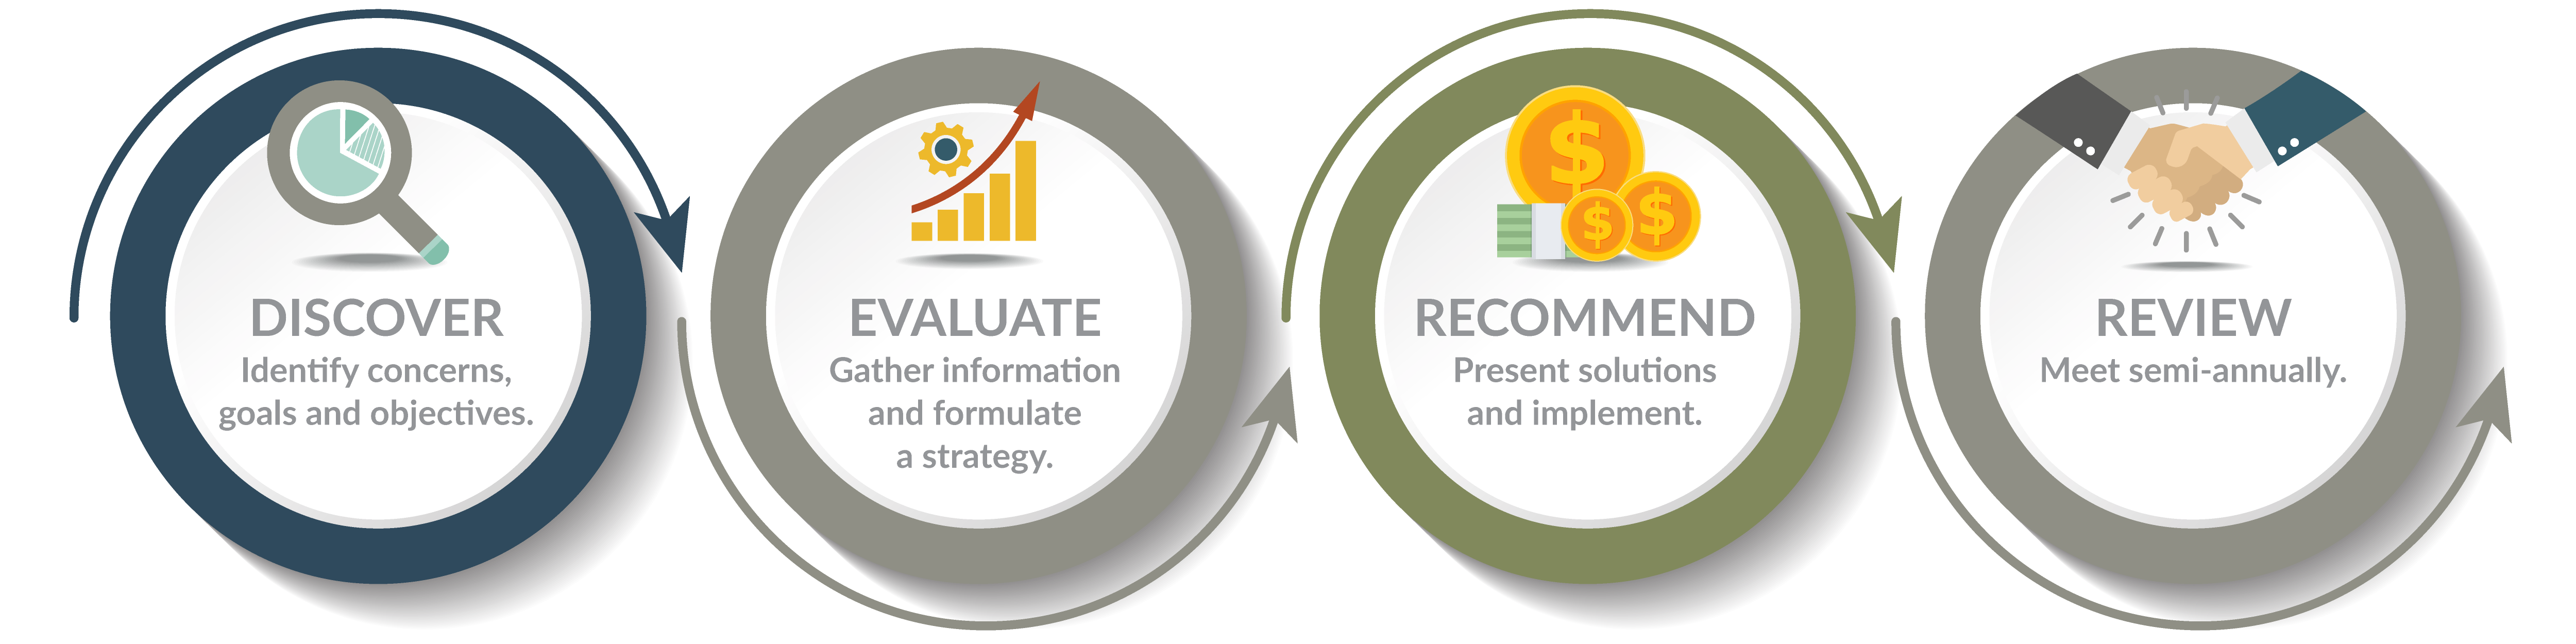 Cleveland Wealth's Process: Discover, Evaluate, Recommend, Review